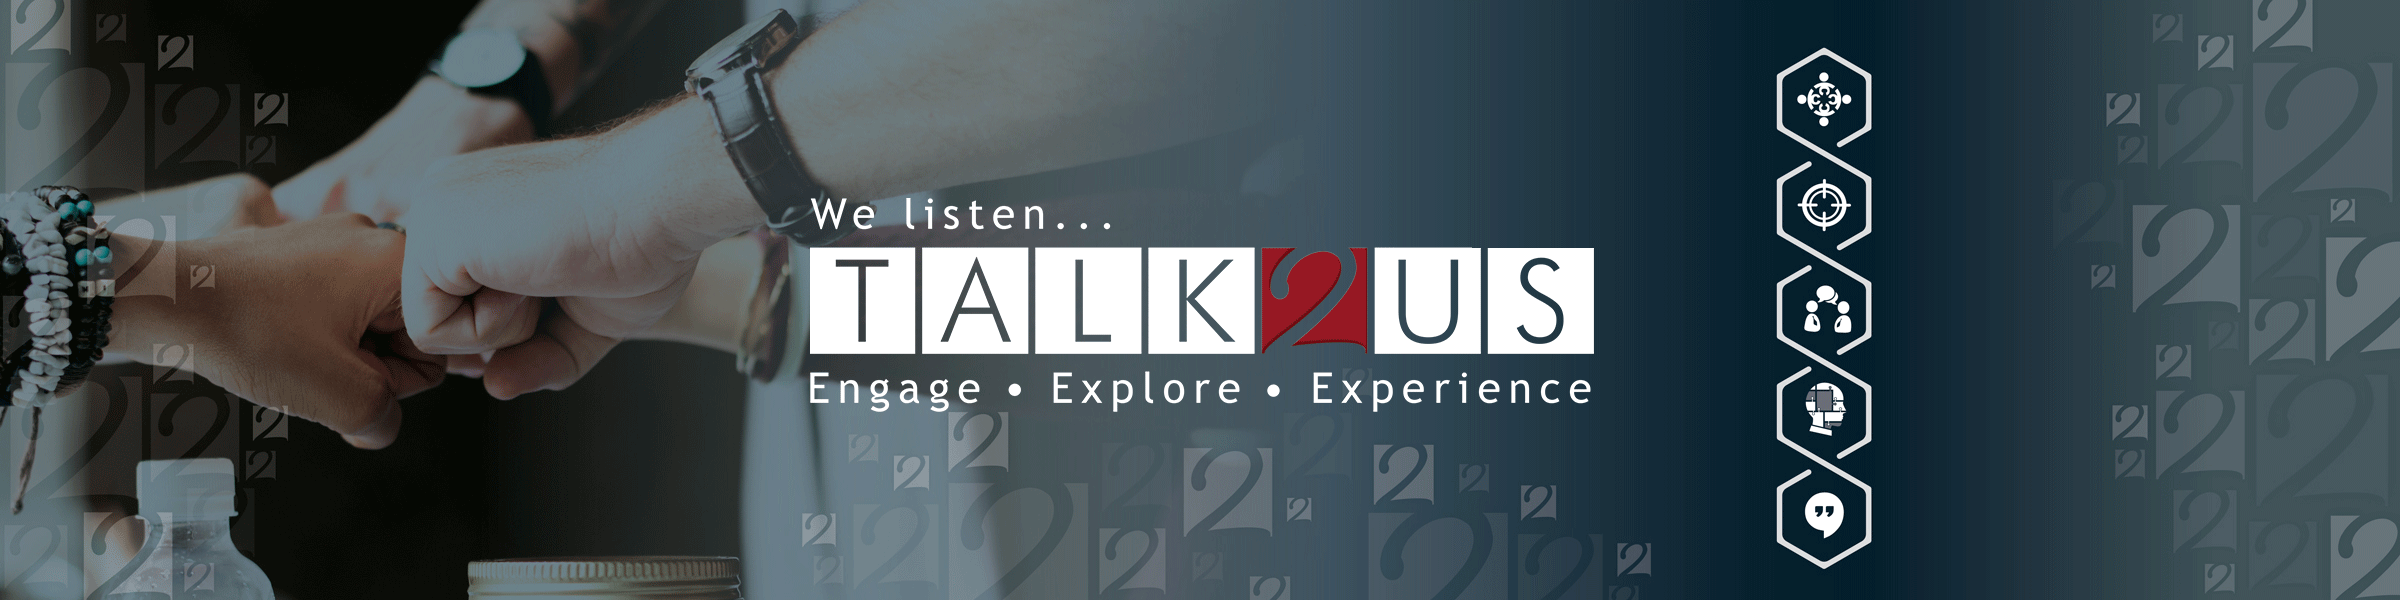 talk2us-business-banner-white-2600px-1.png